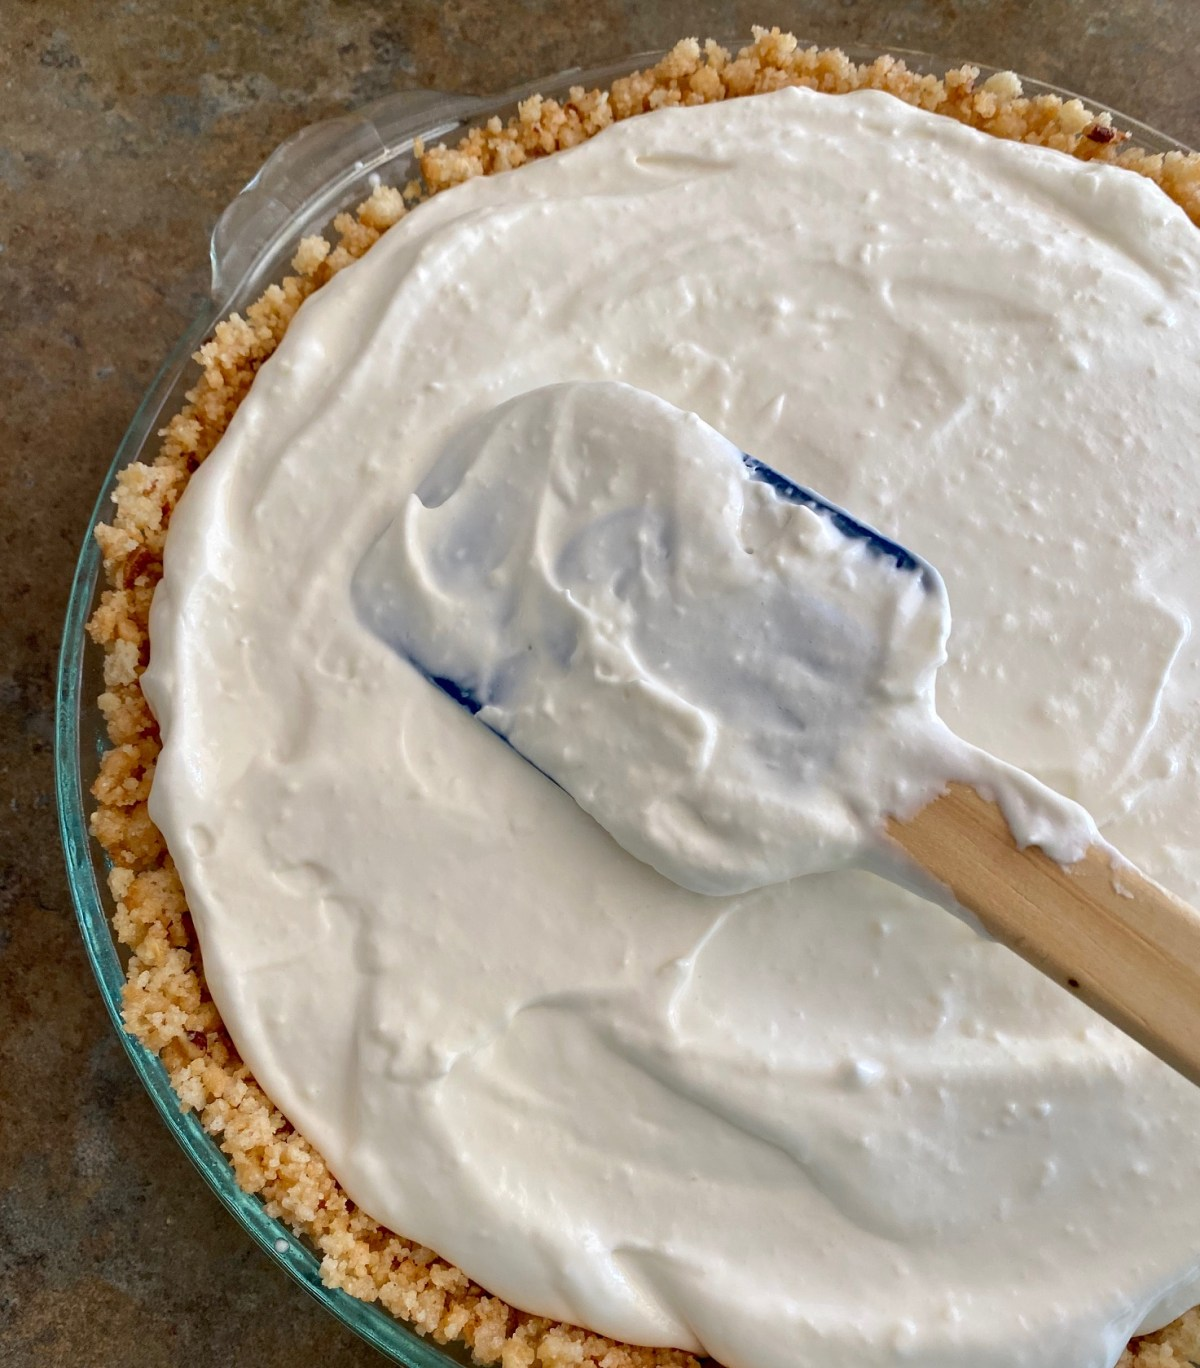 Key lime cream filling is spooned into the cookie crust. #keylimepie #keylimecreampie #creampie #pie #easypierecipes #holidaydessert